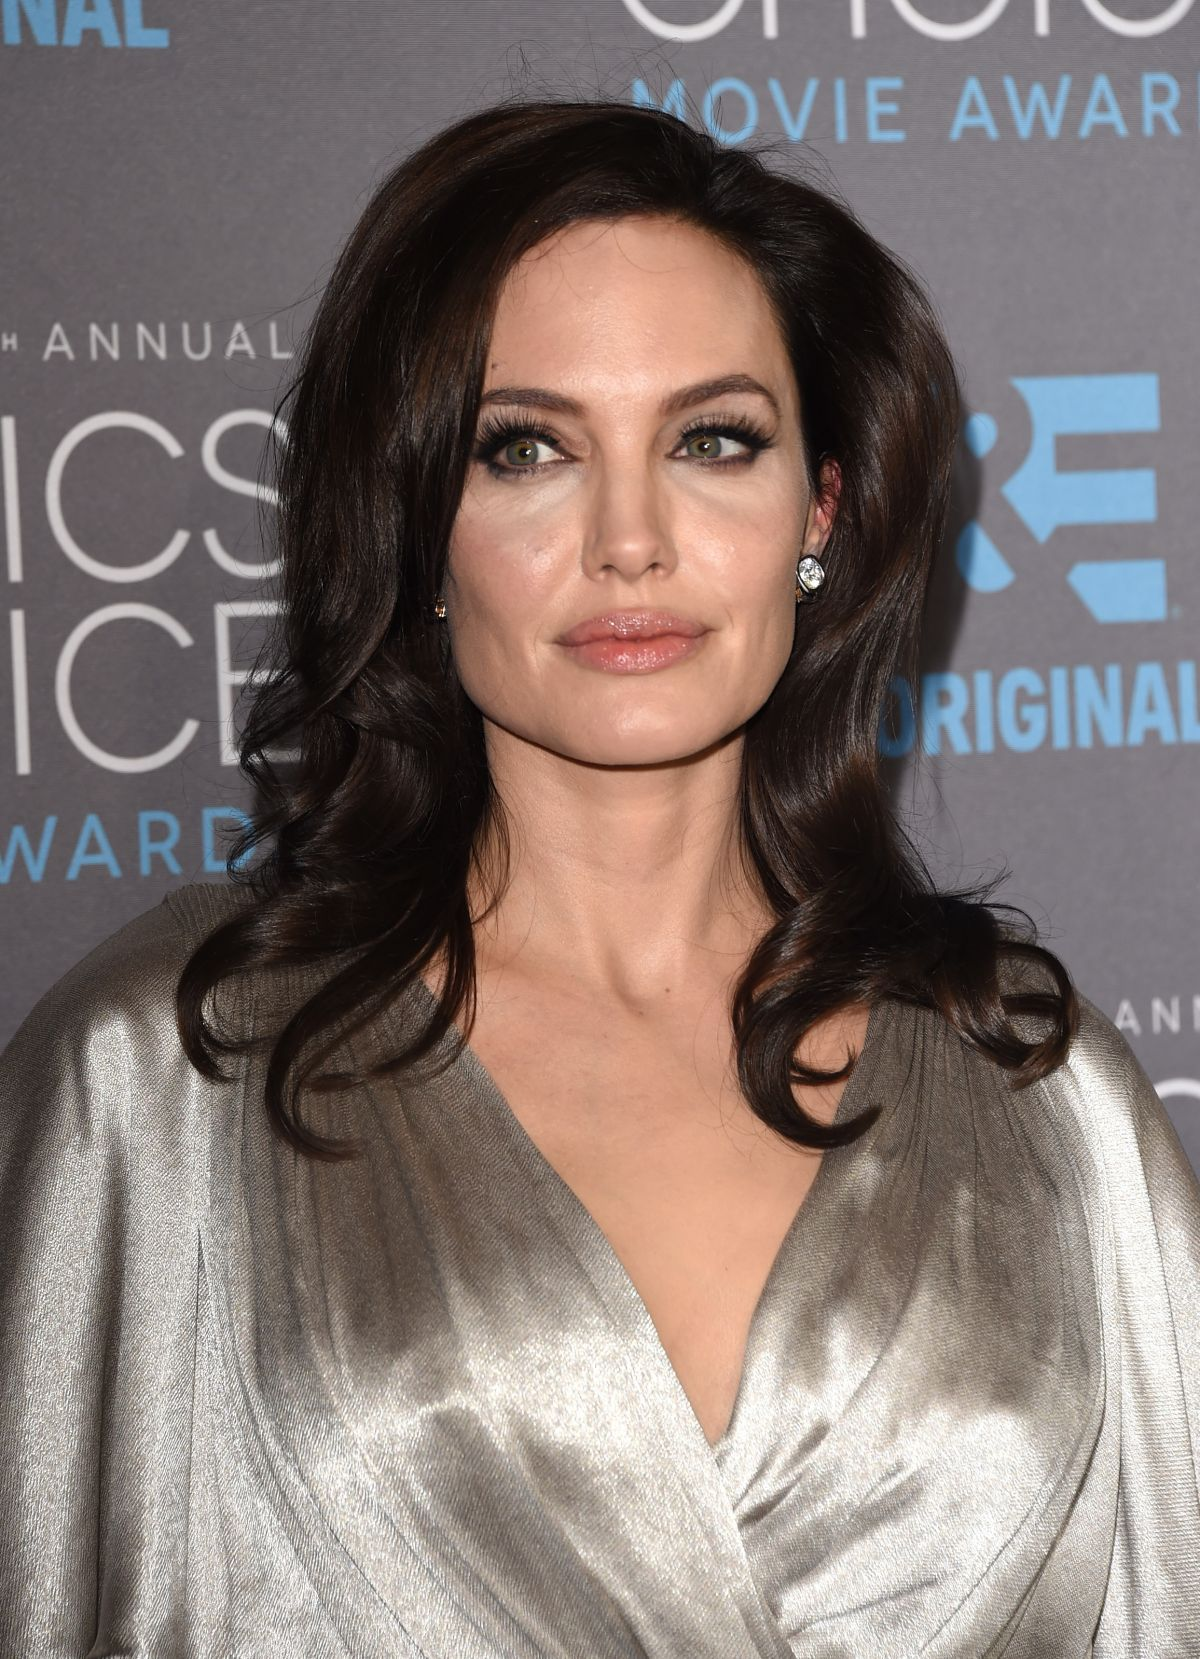 ANGELINA JOLIE at 2015 Critics Choice Movie Awards in Los Angeles